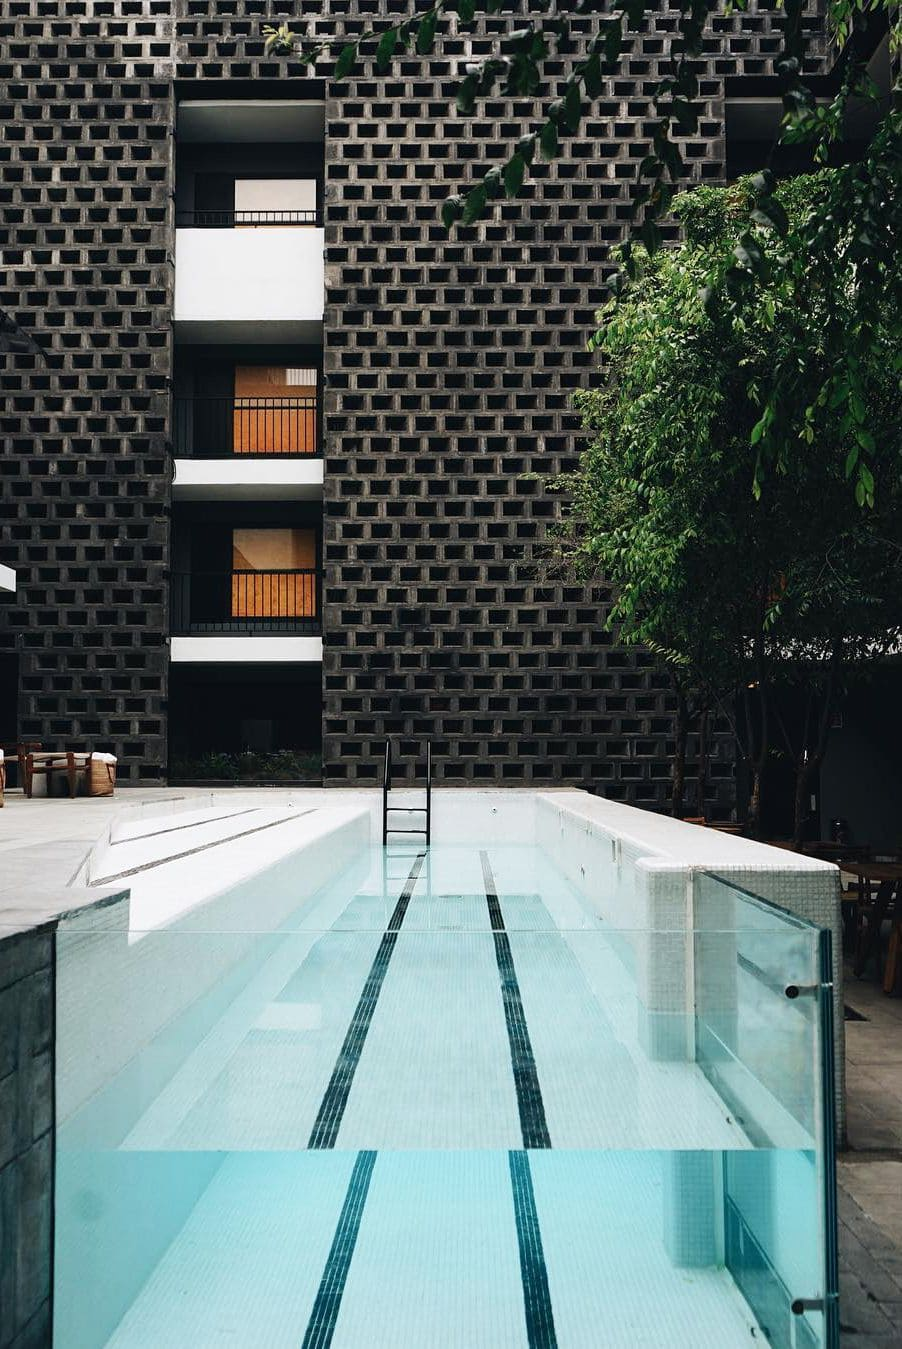 These Indoor Swimming Pool Designs Are Going to Blow Your Mind